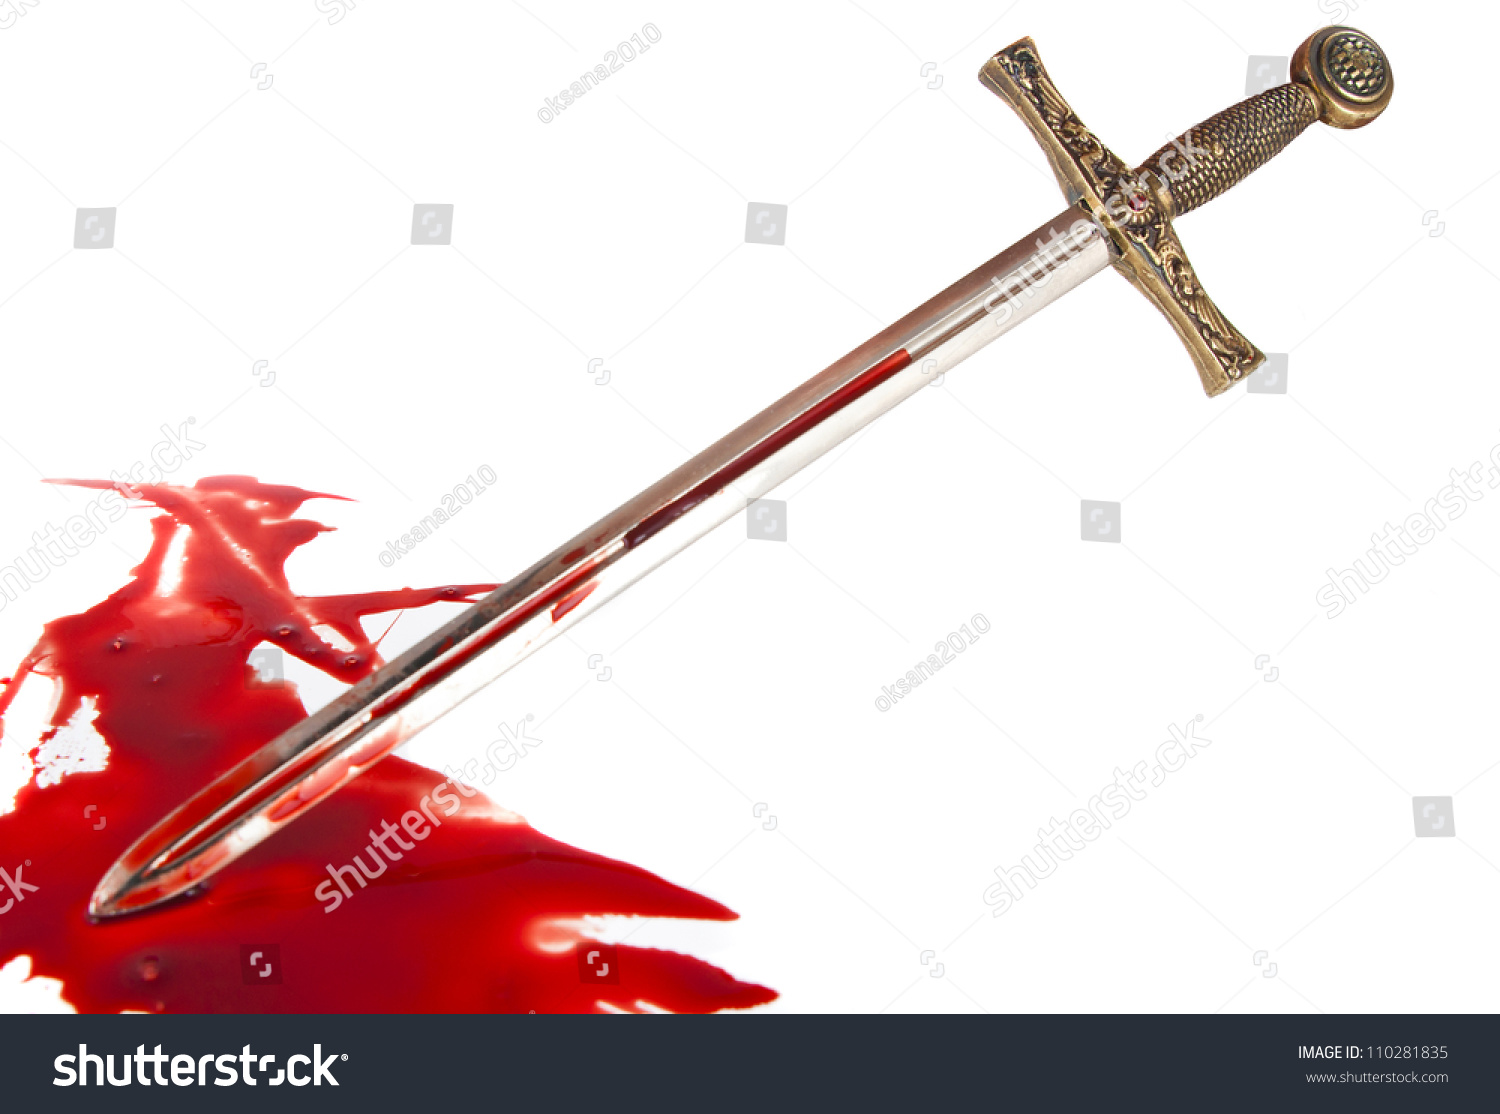 the knights sword